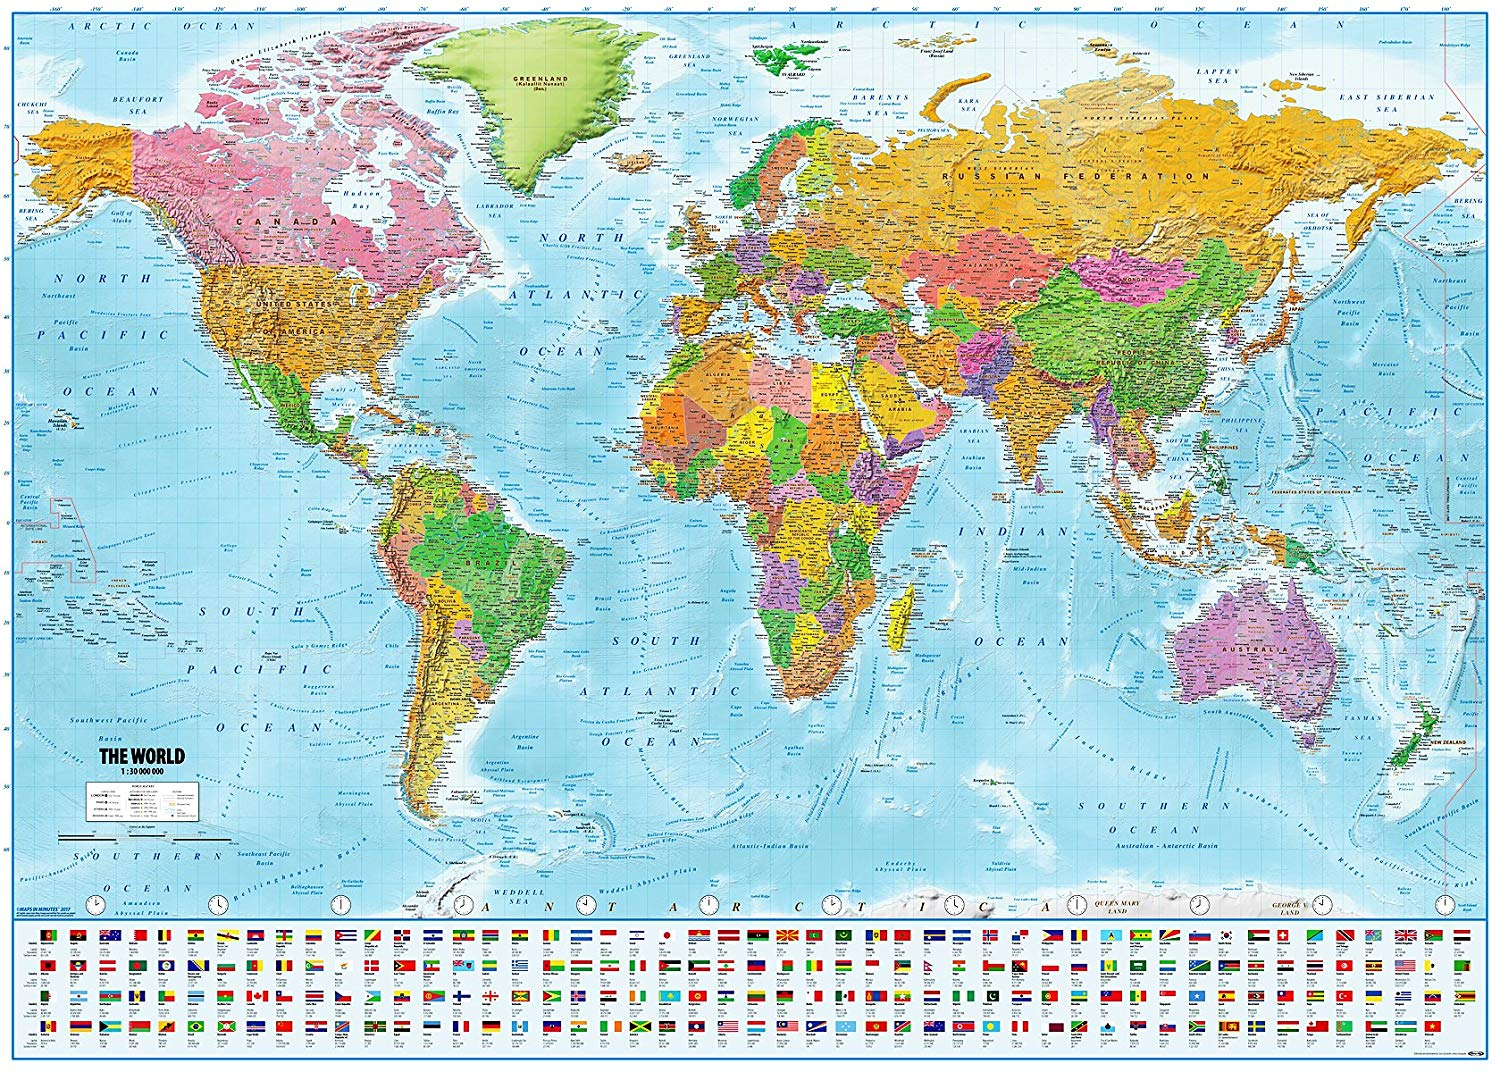 Capital cities of all countries